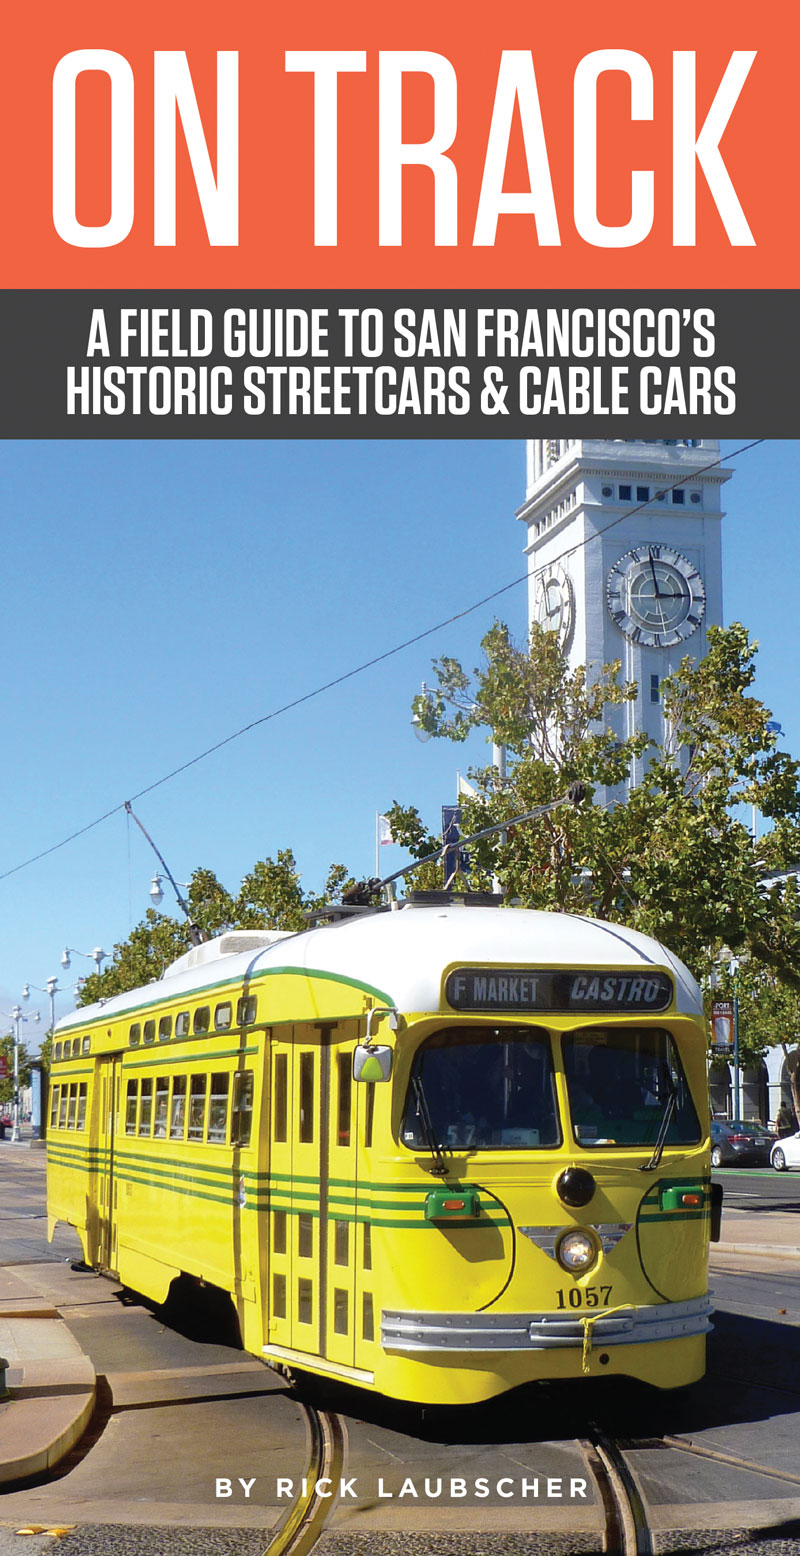 On Track: A Field Guide to San Francisco's Streetcars and Cable Cars